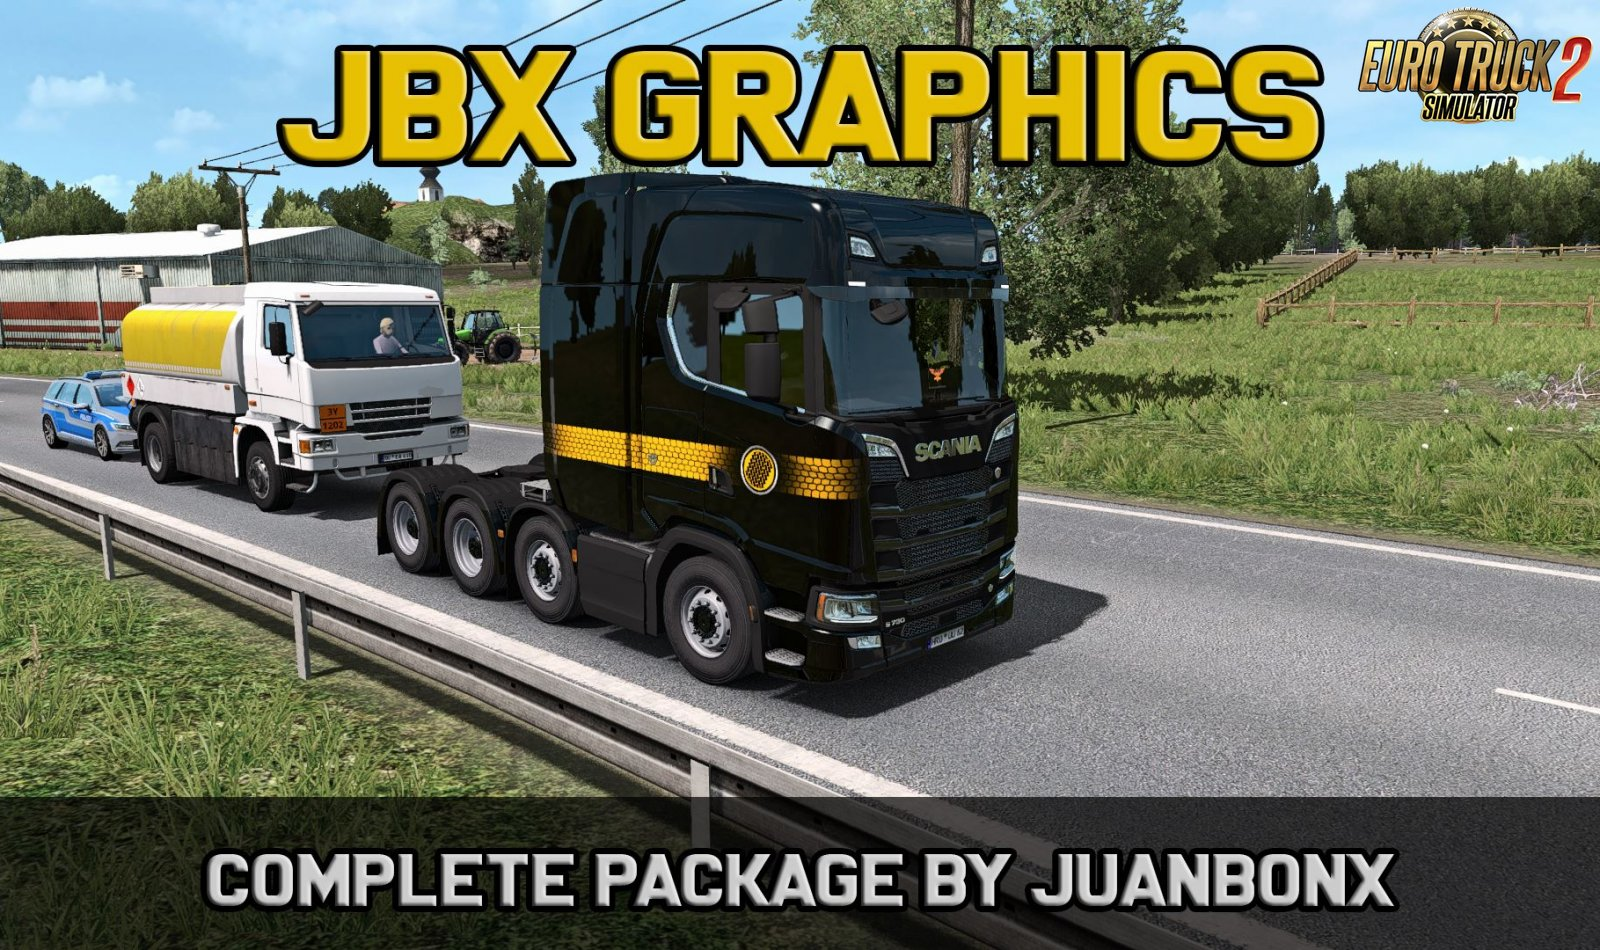 JBX Graphics - Complete Package by JuanBonX